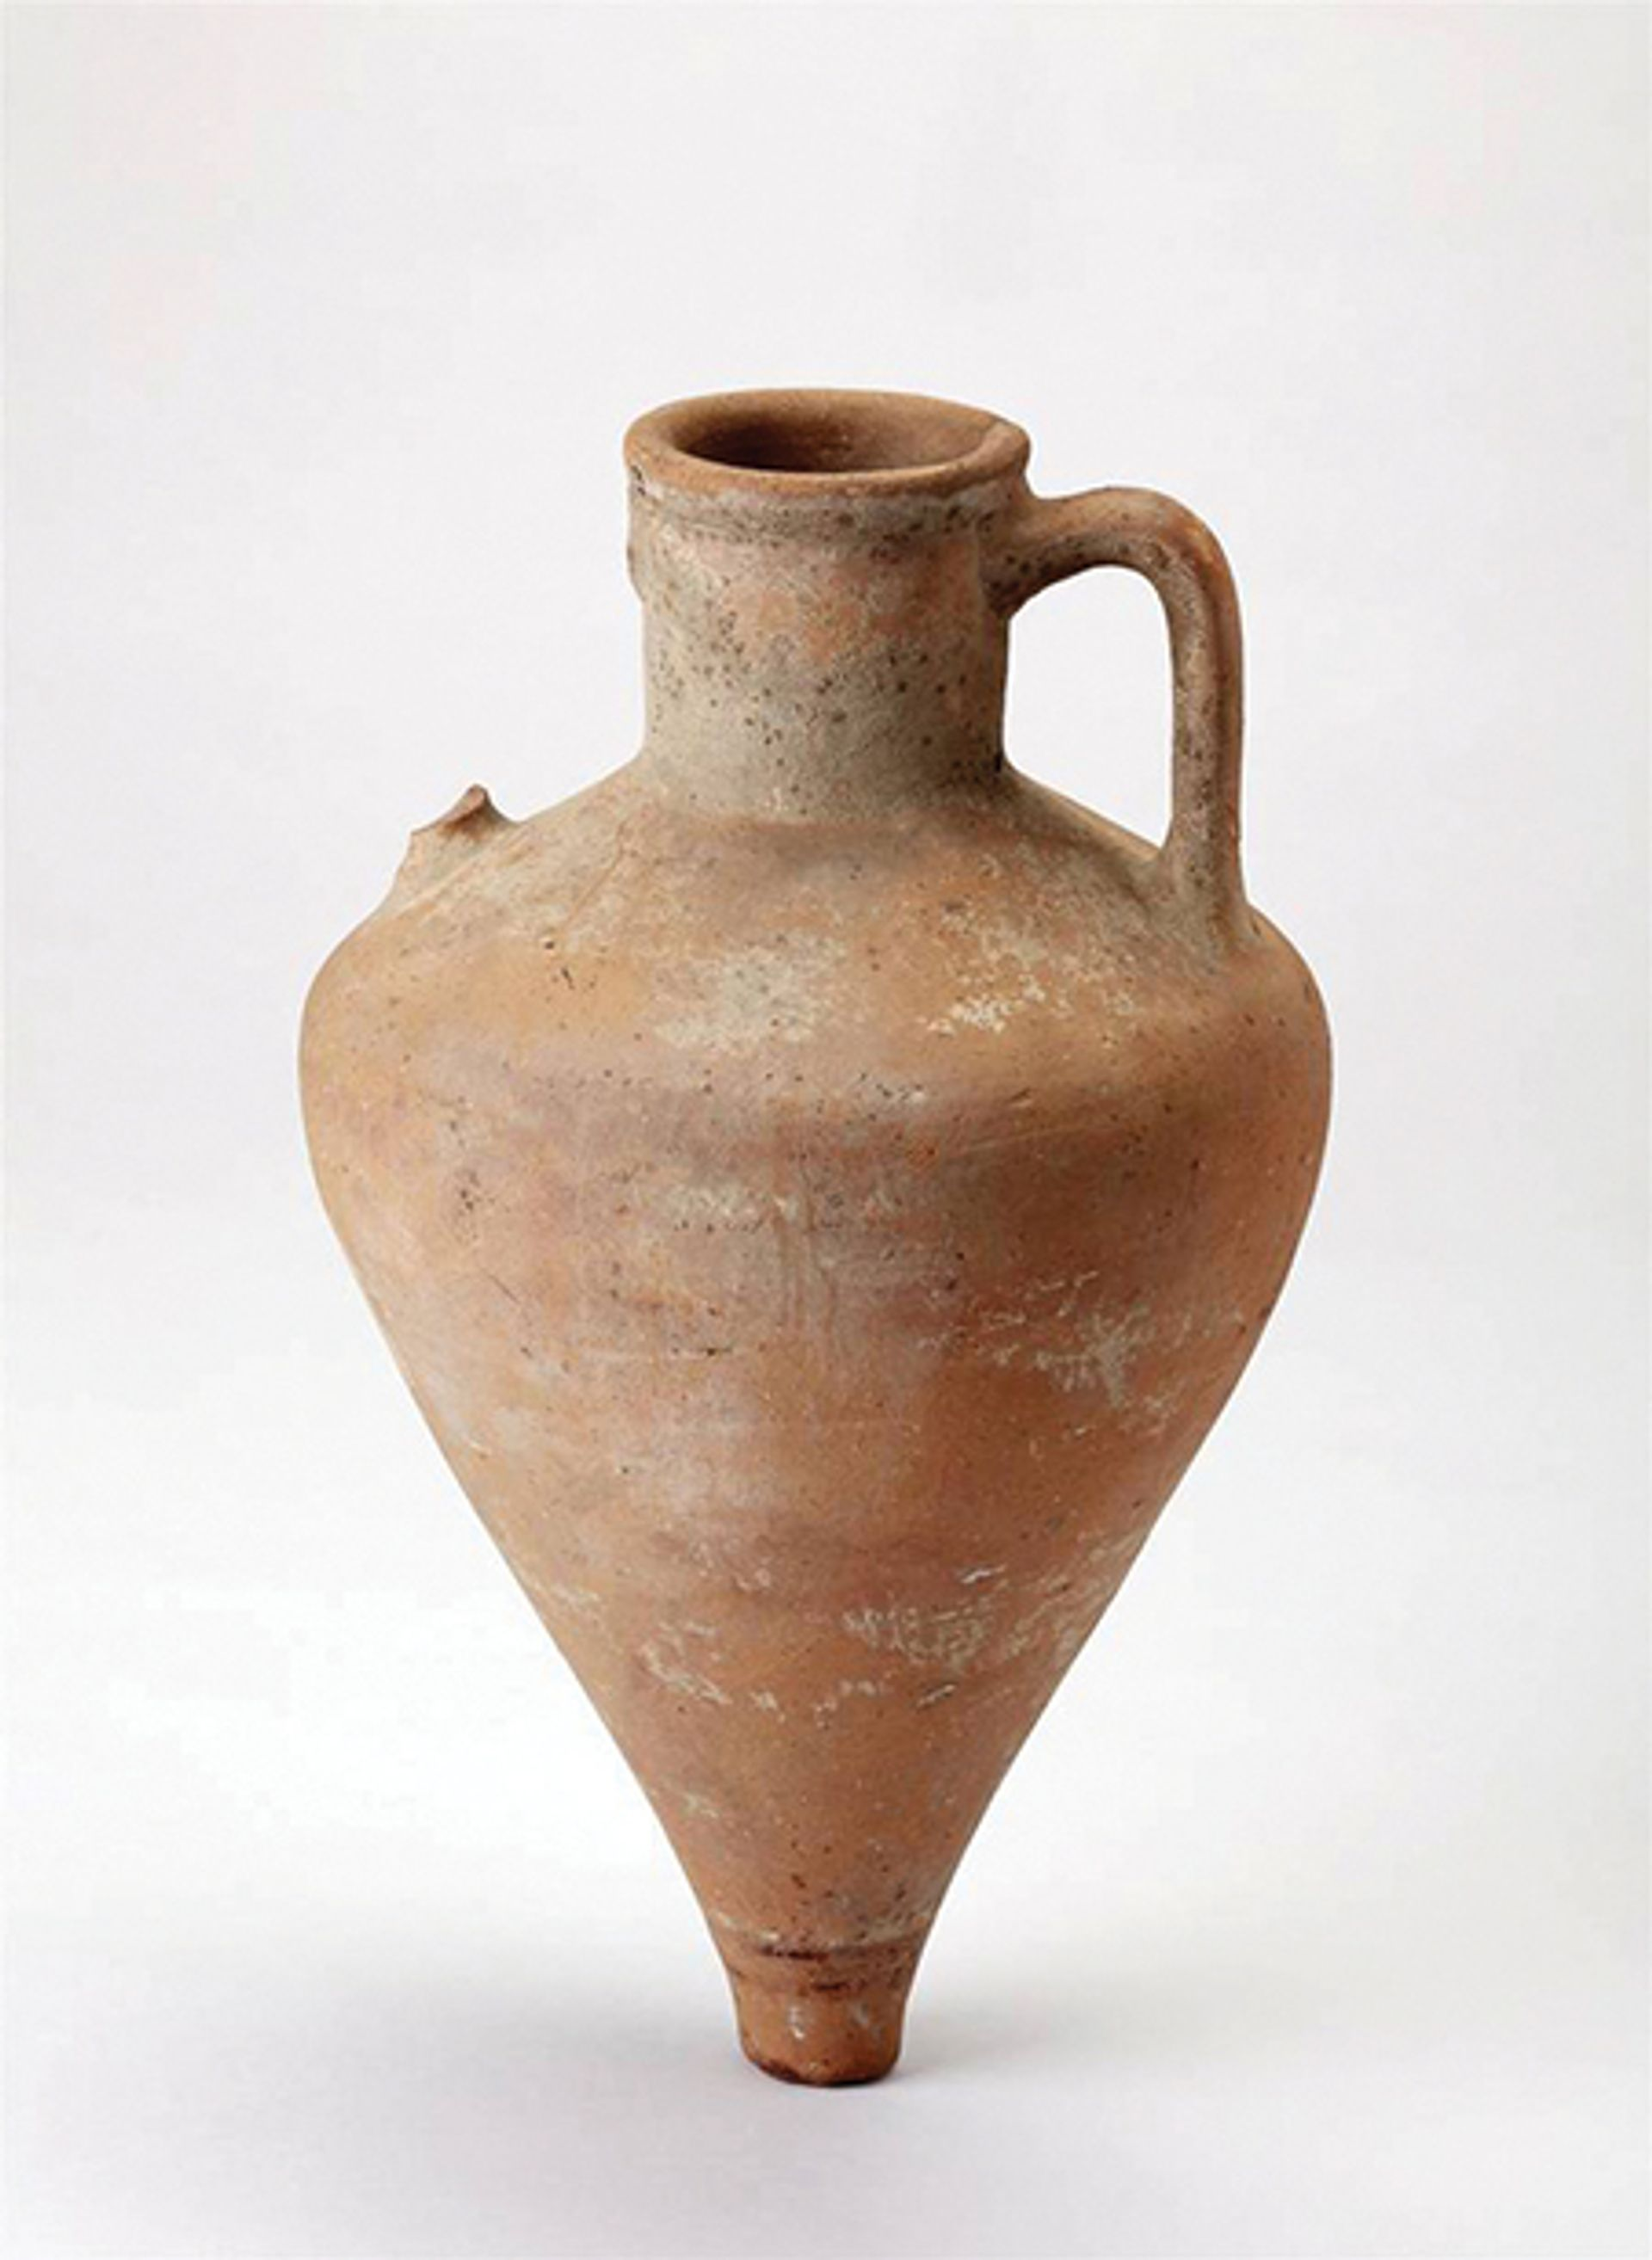 Three amphorae are among the artefacts being returned to the historical museum in Temryuk © Salzburg Museum